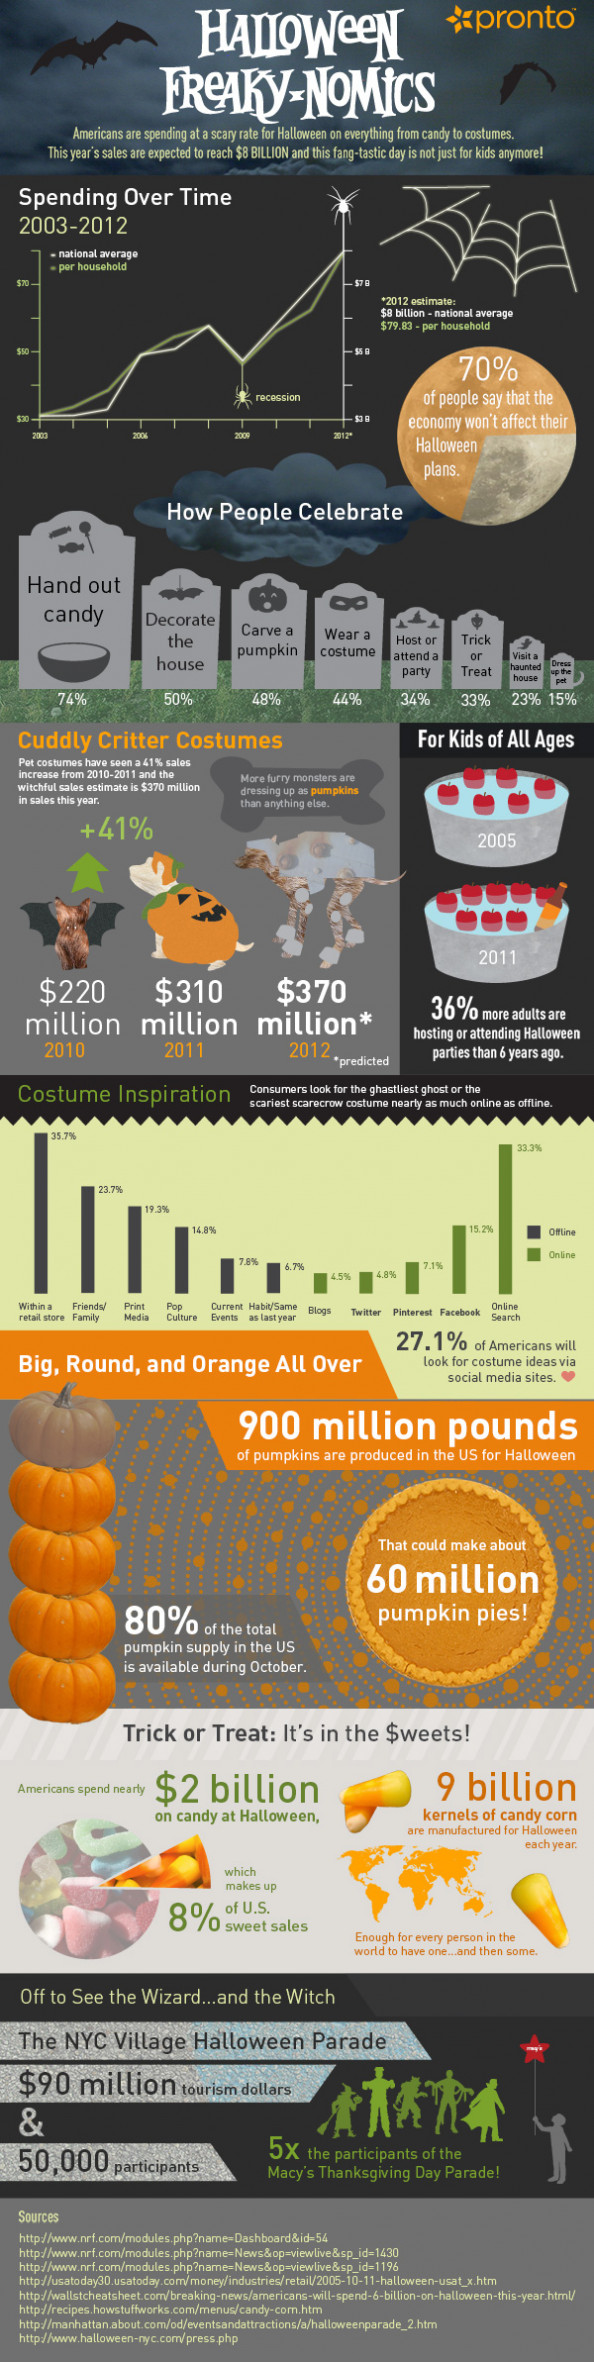 Halloween Freaky-nomics  Infographic